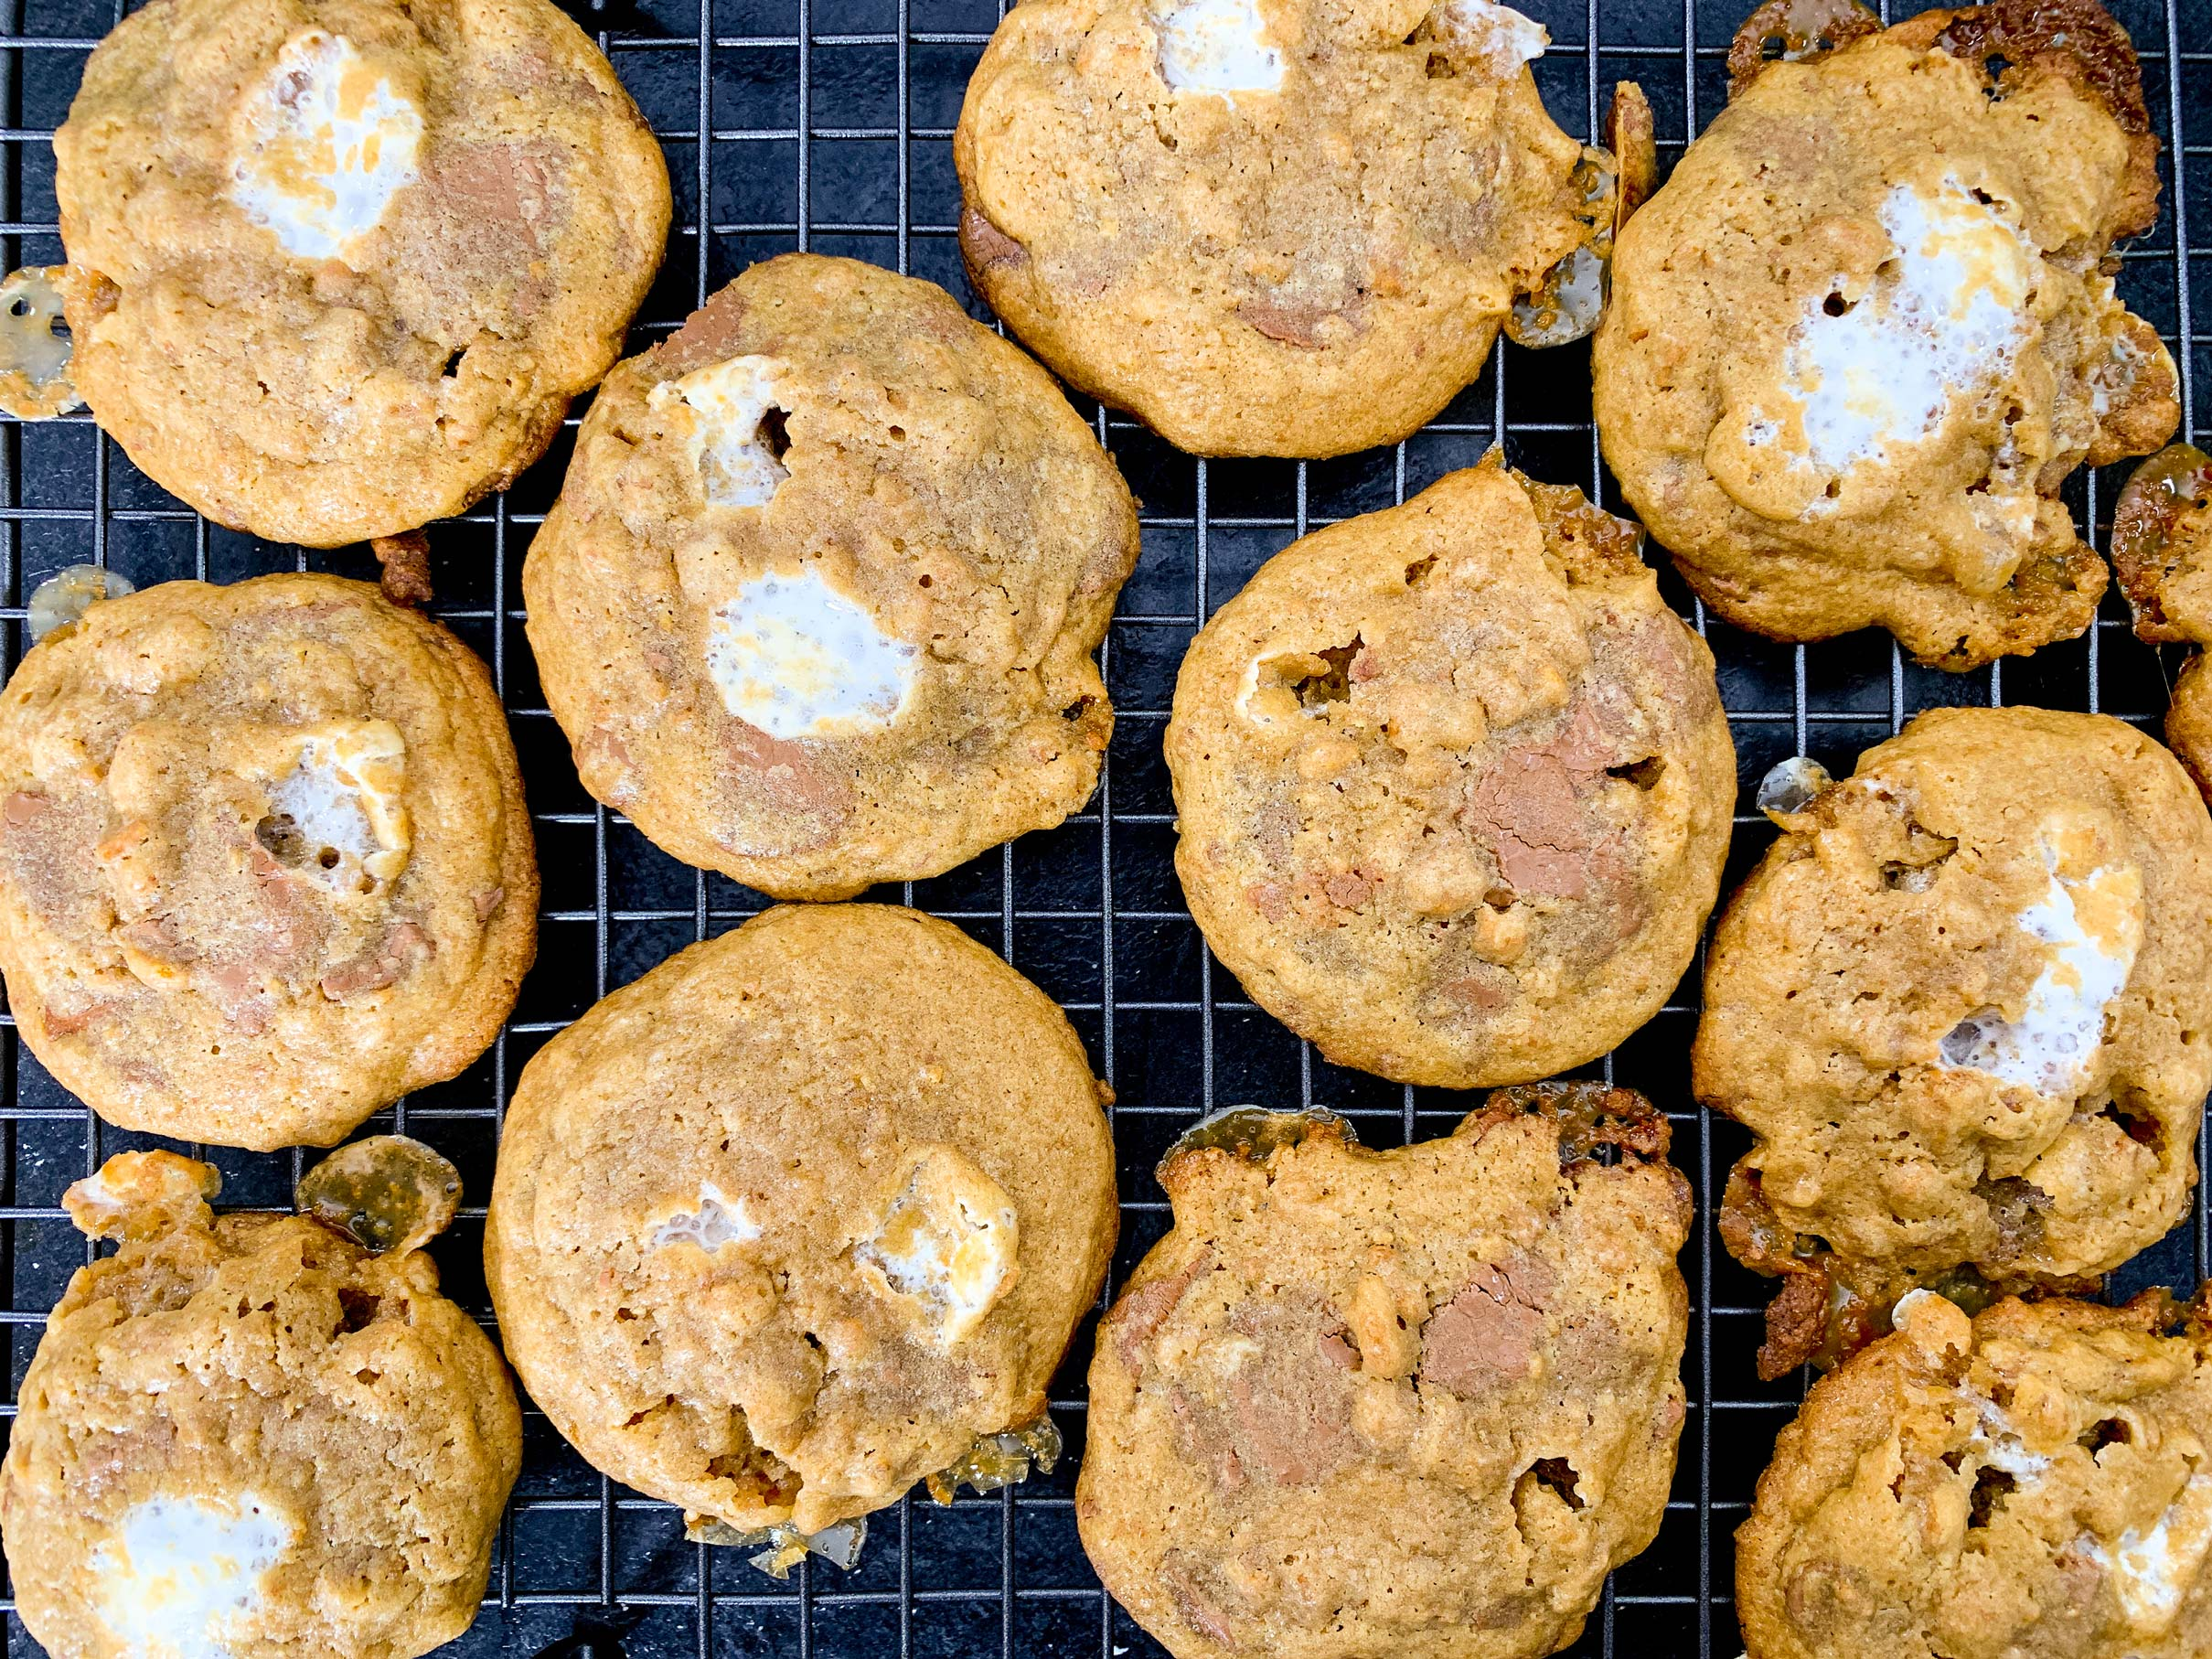 s'mores cookies cooling on a wire rack